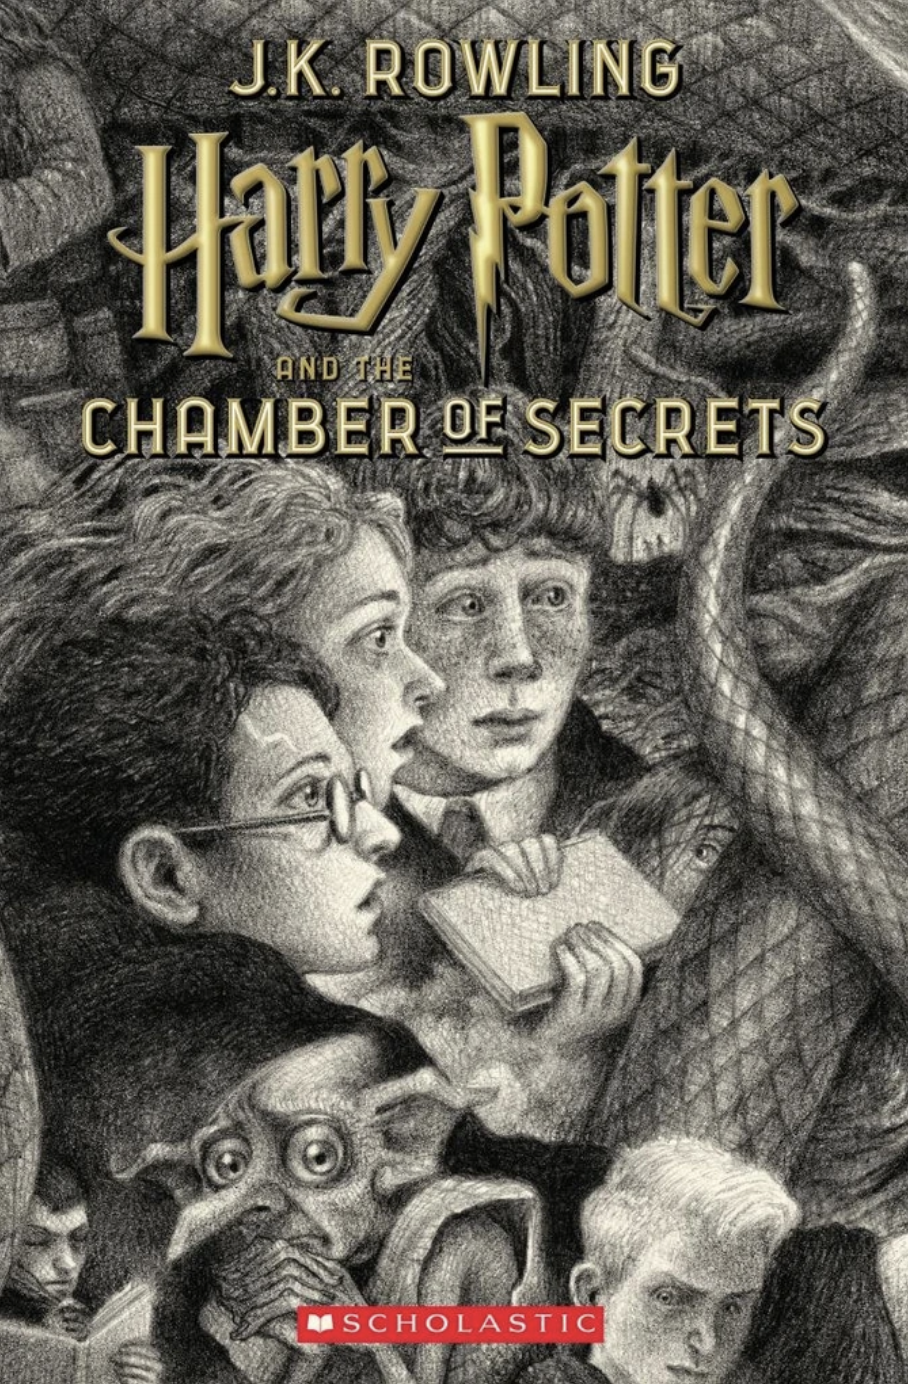 Harry Potter and the Chamber of Secrets — J.K. Rowling